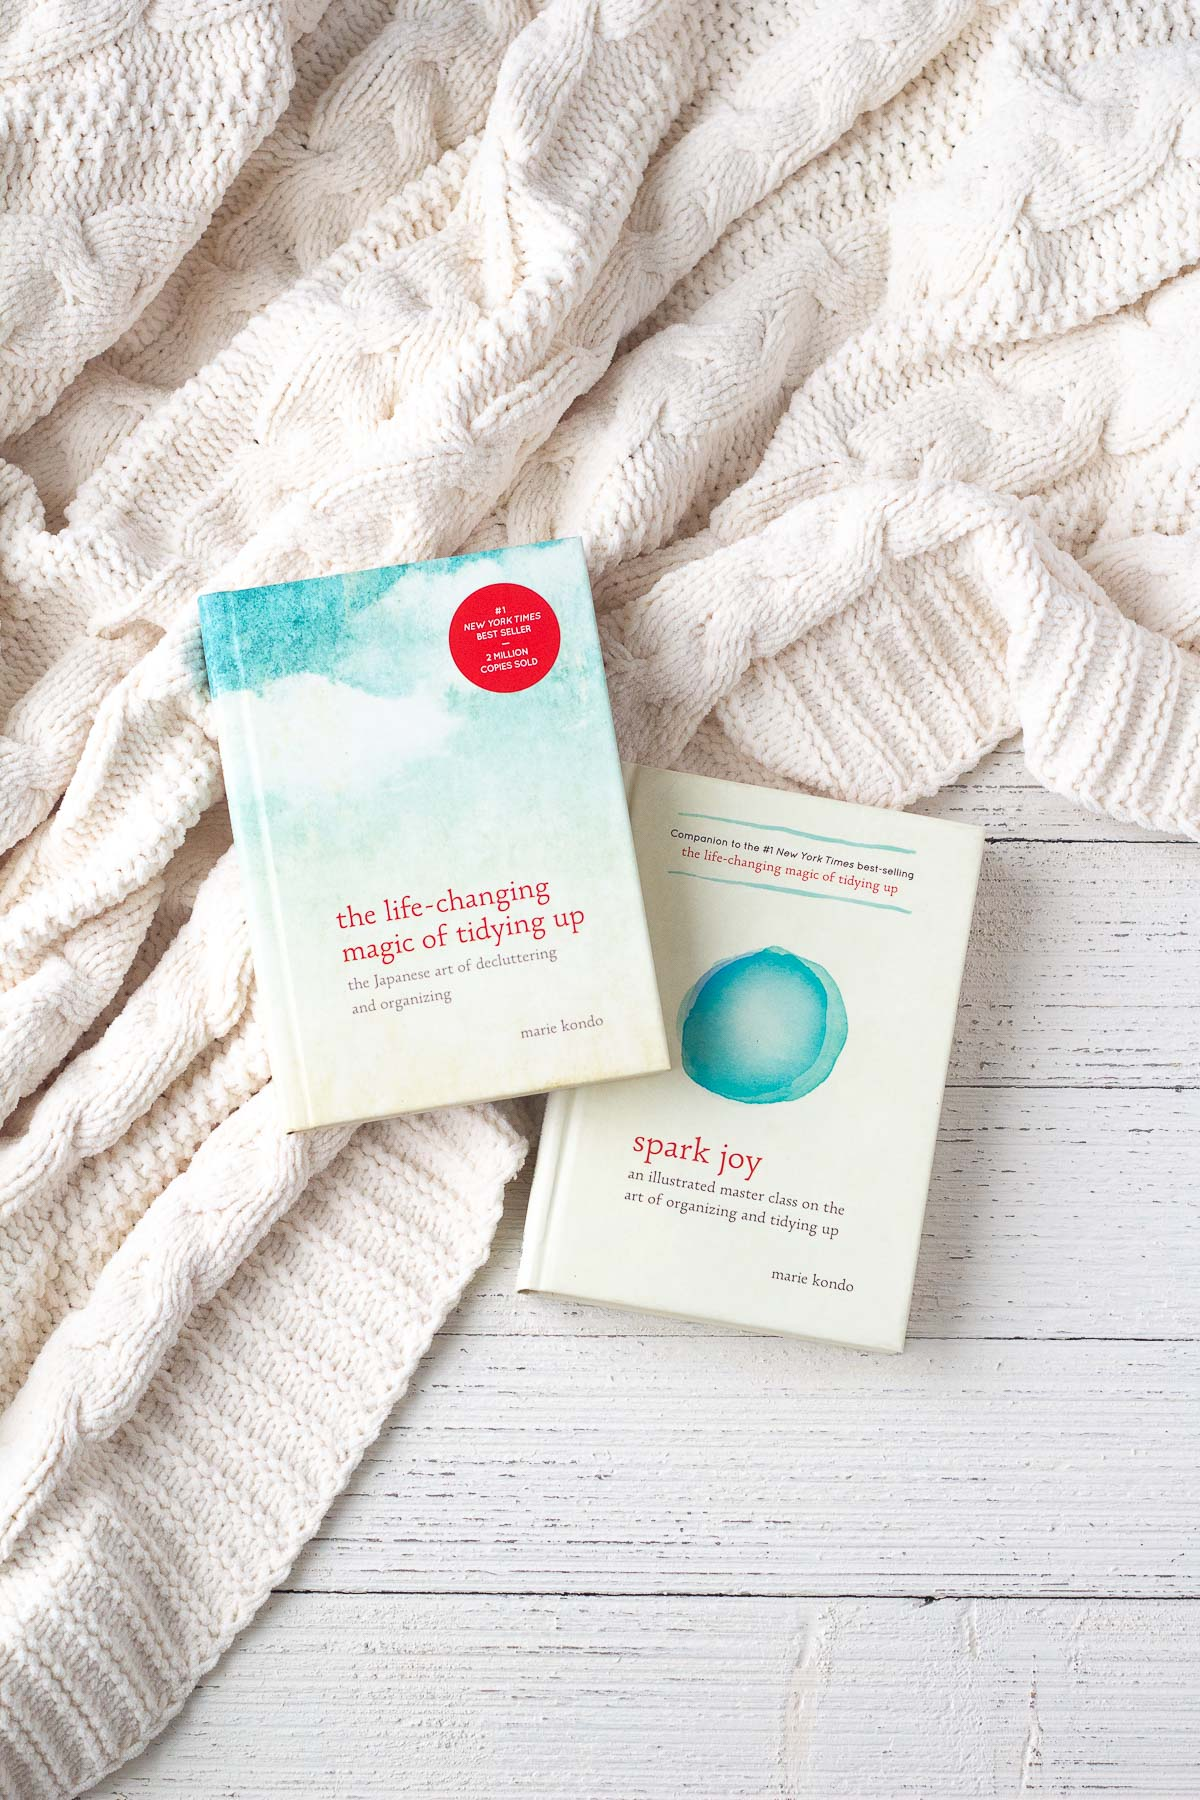 Marie Kondo's books (which provide decluttering tips) on a knit blanket and wooden surface.